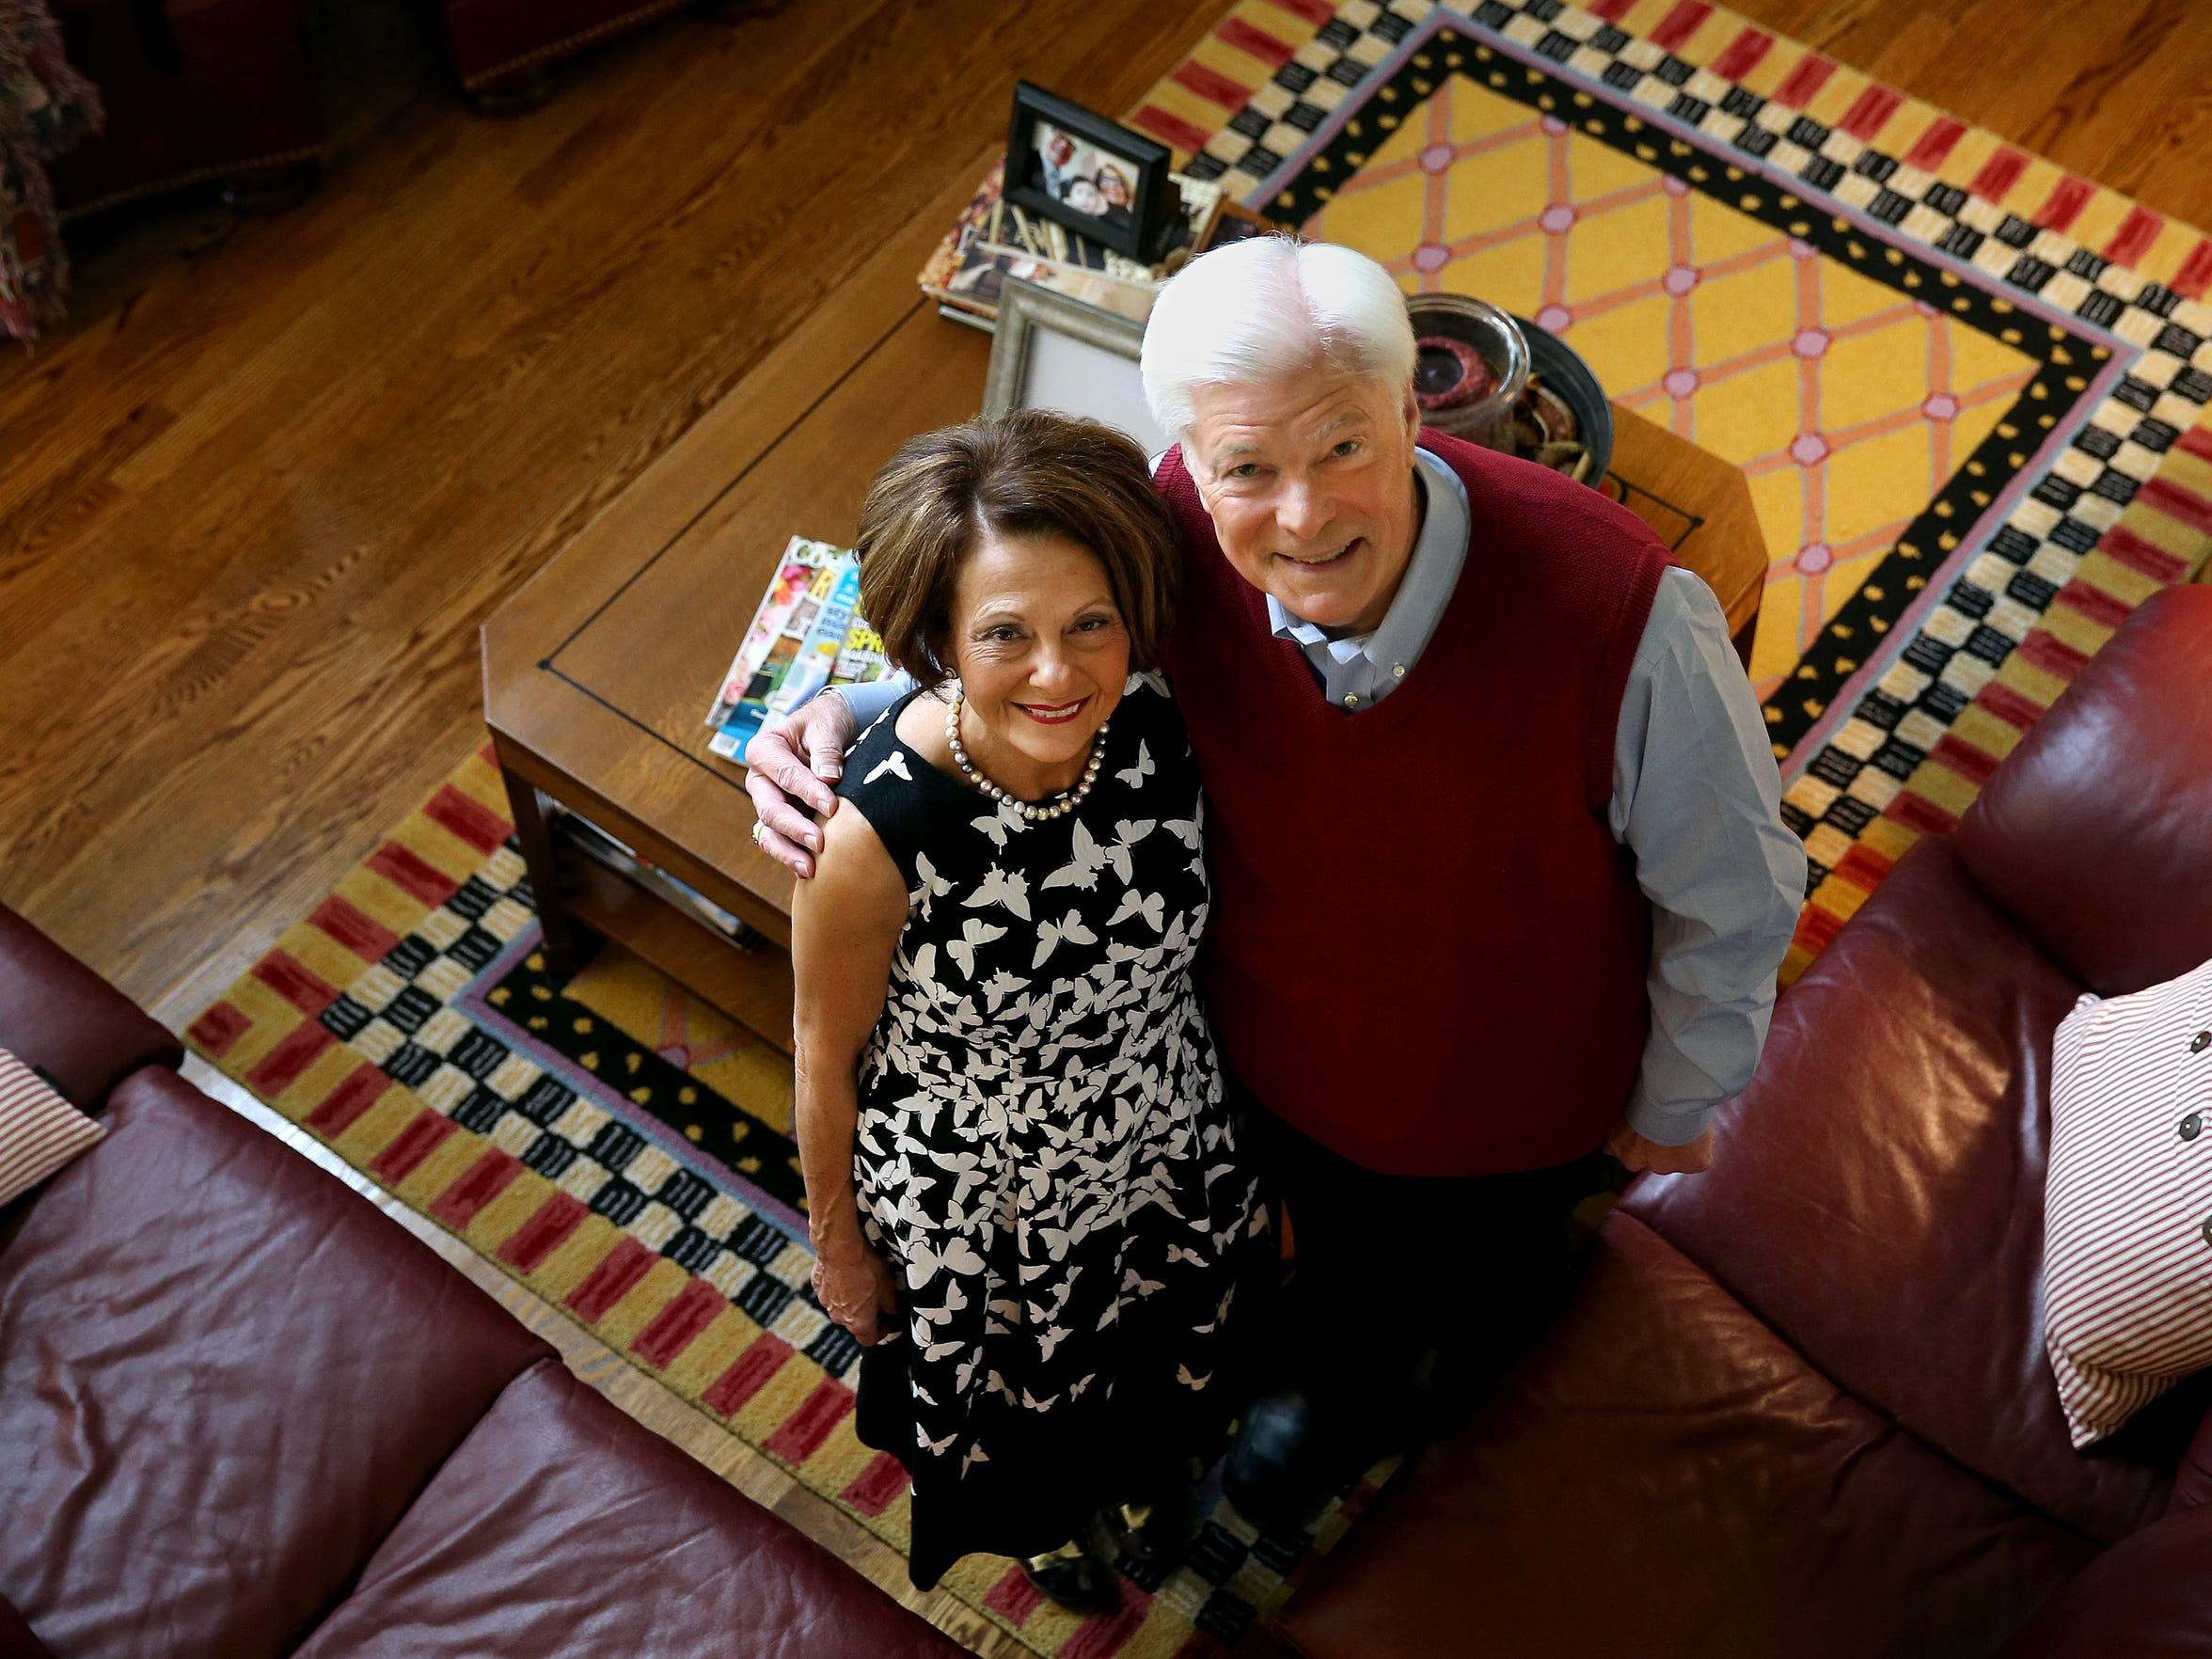 Mary and Don Alhart were married in 1970. They met in 1968 when she was a Miss Rochester pageant contestant at Bishop Kearney High and Don was there working for Channel 13.